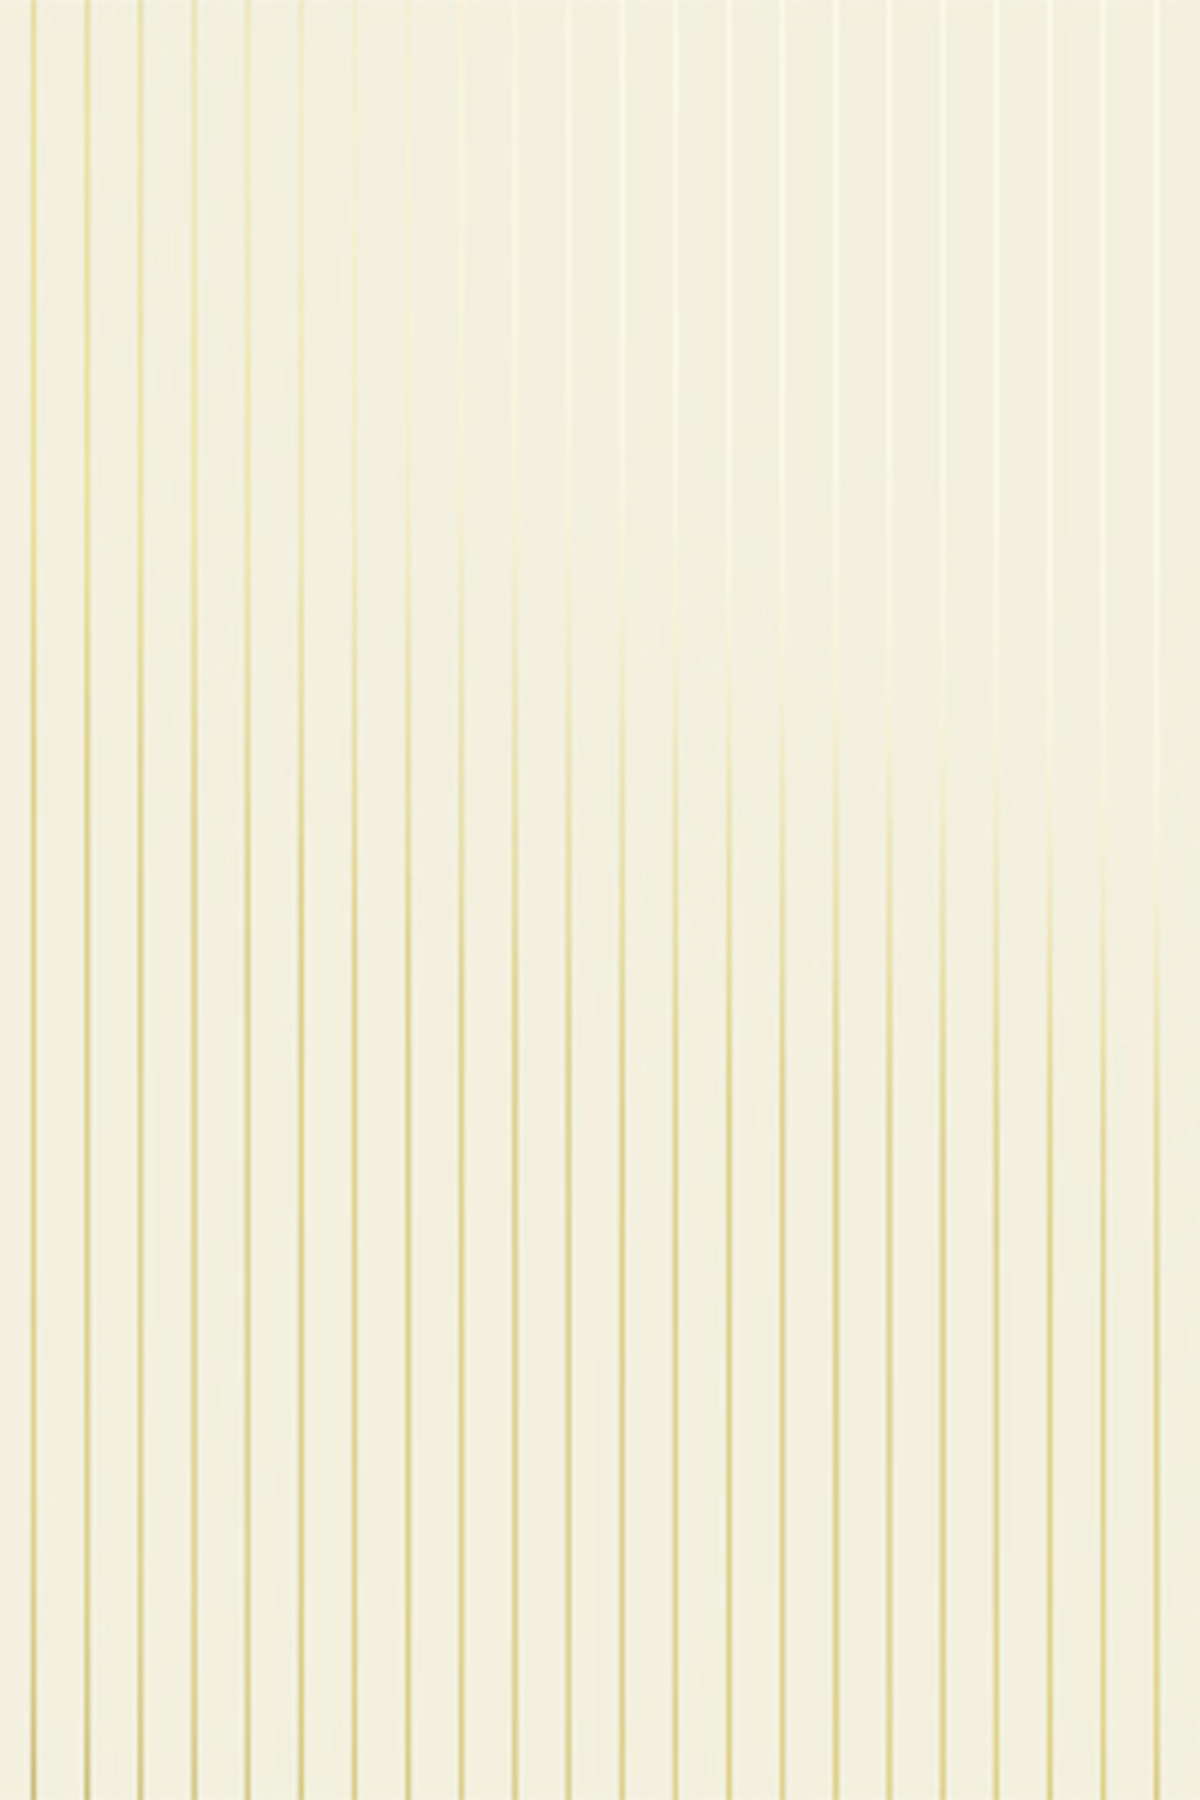 Pinstripe Wallpaper Cream and Gold Monument Interiors 1200x1800